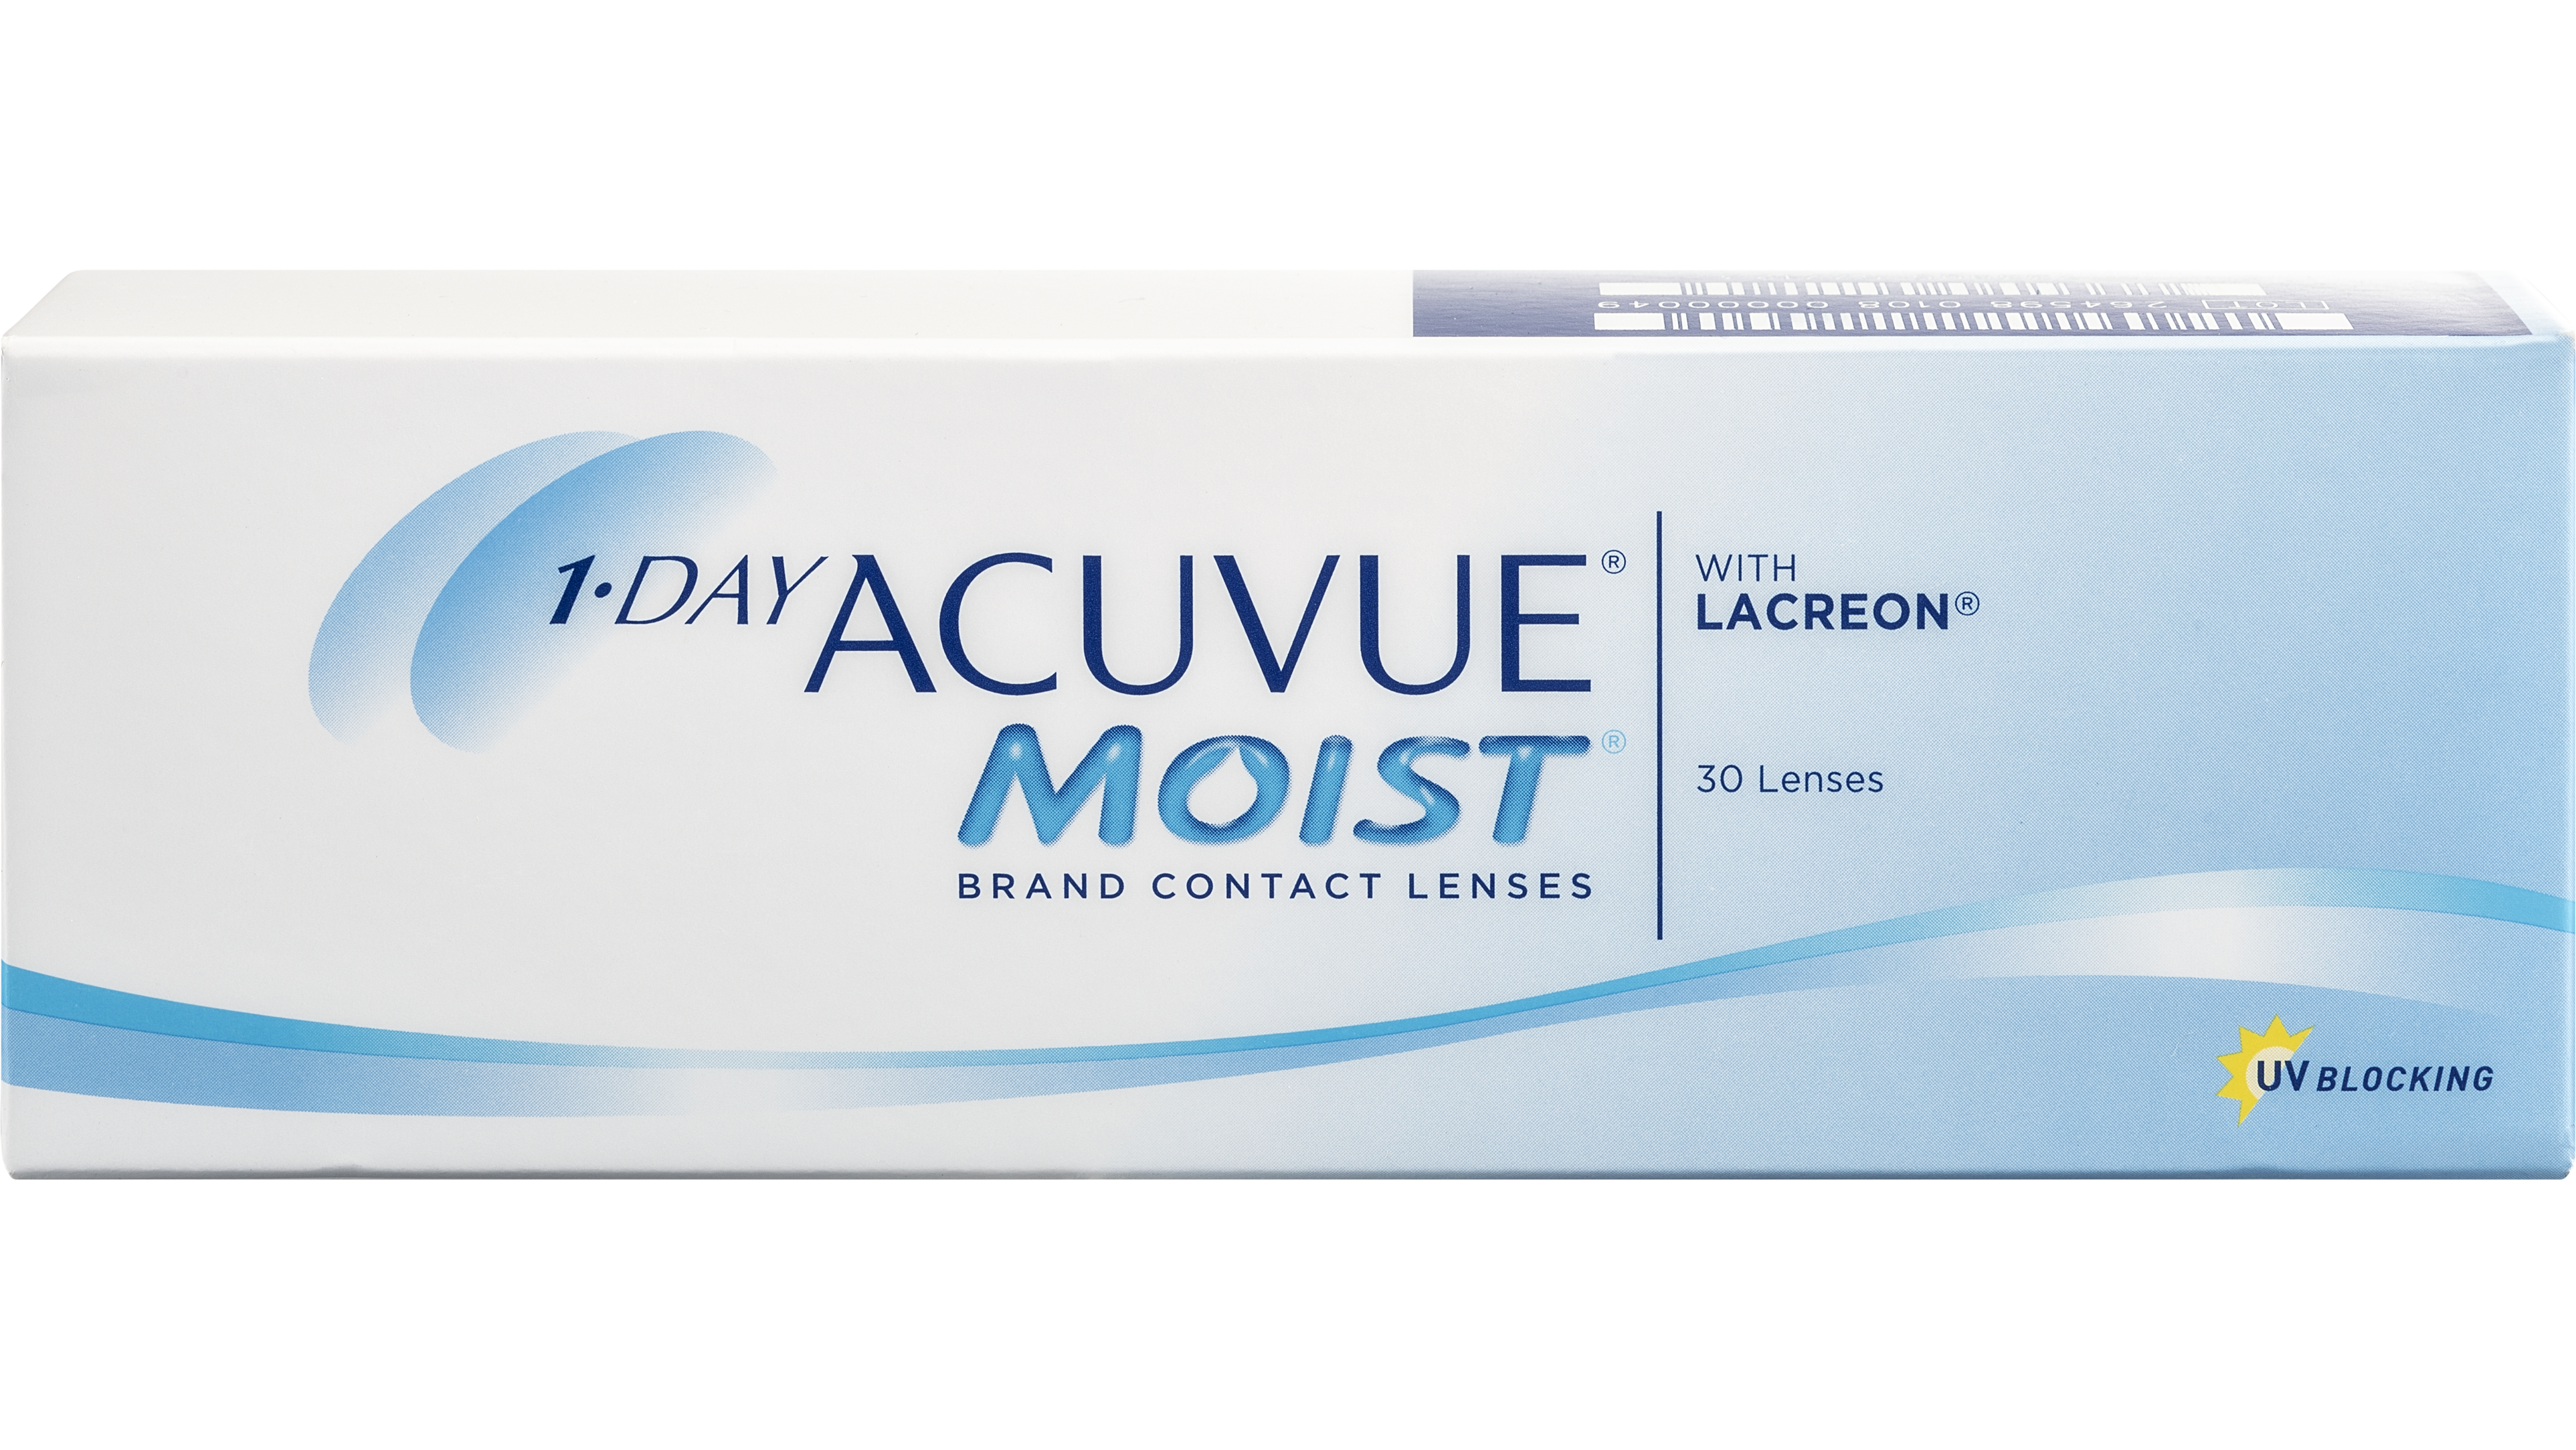 Front 1 Day Acuvue Moist